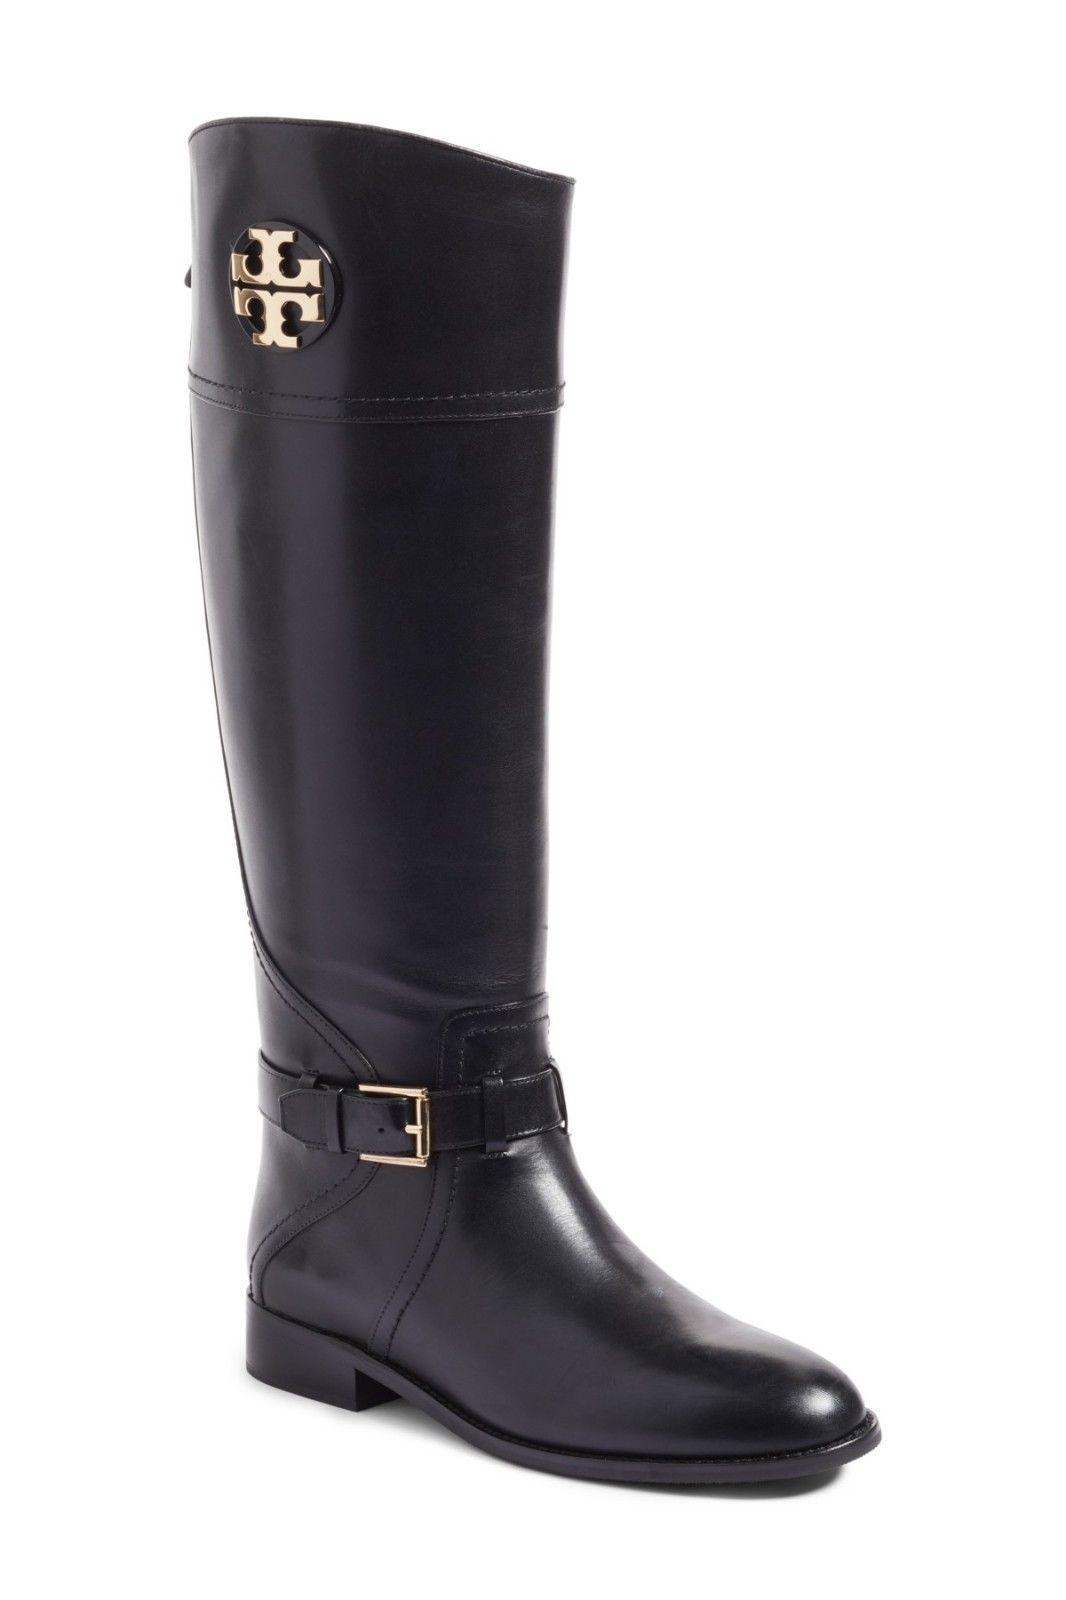 $495 Tory Burch ADELINE Riding Boots Tall Flat Equestrian Booties 9 Gold Logo